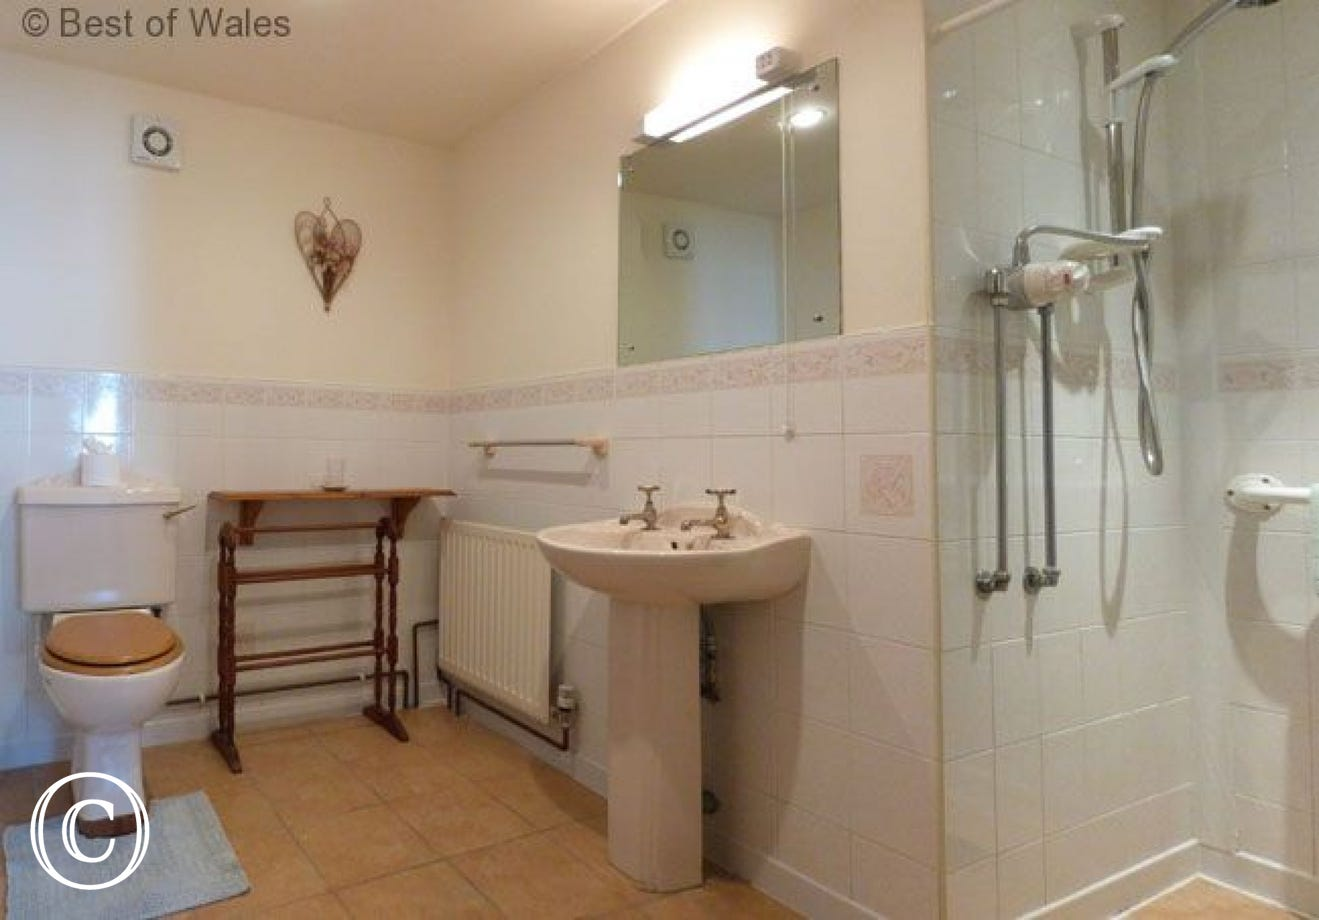 The en-suite shower room has a walk in shower with a seat.